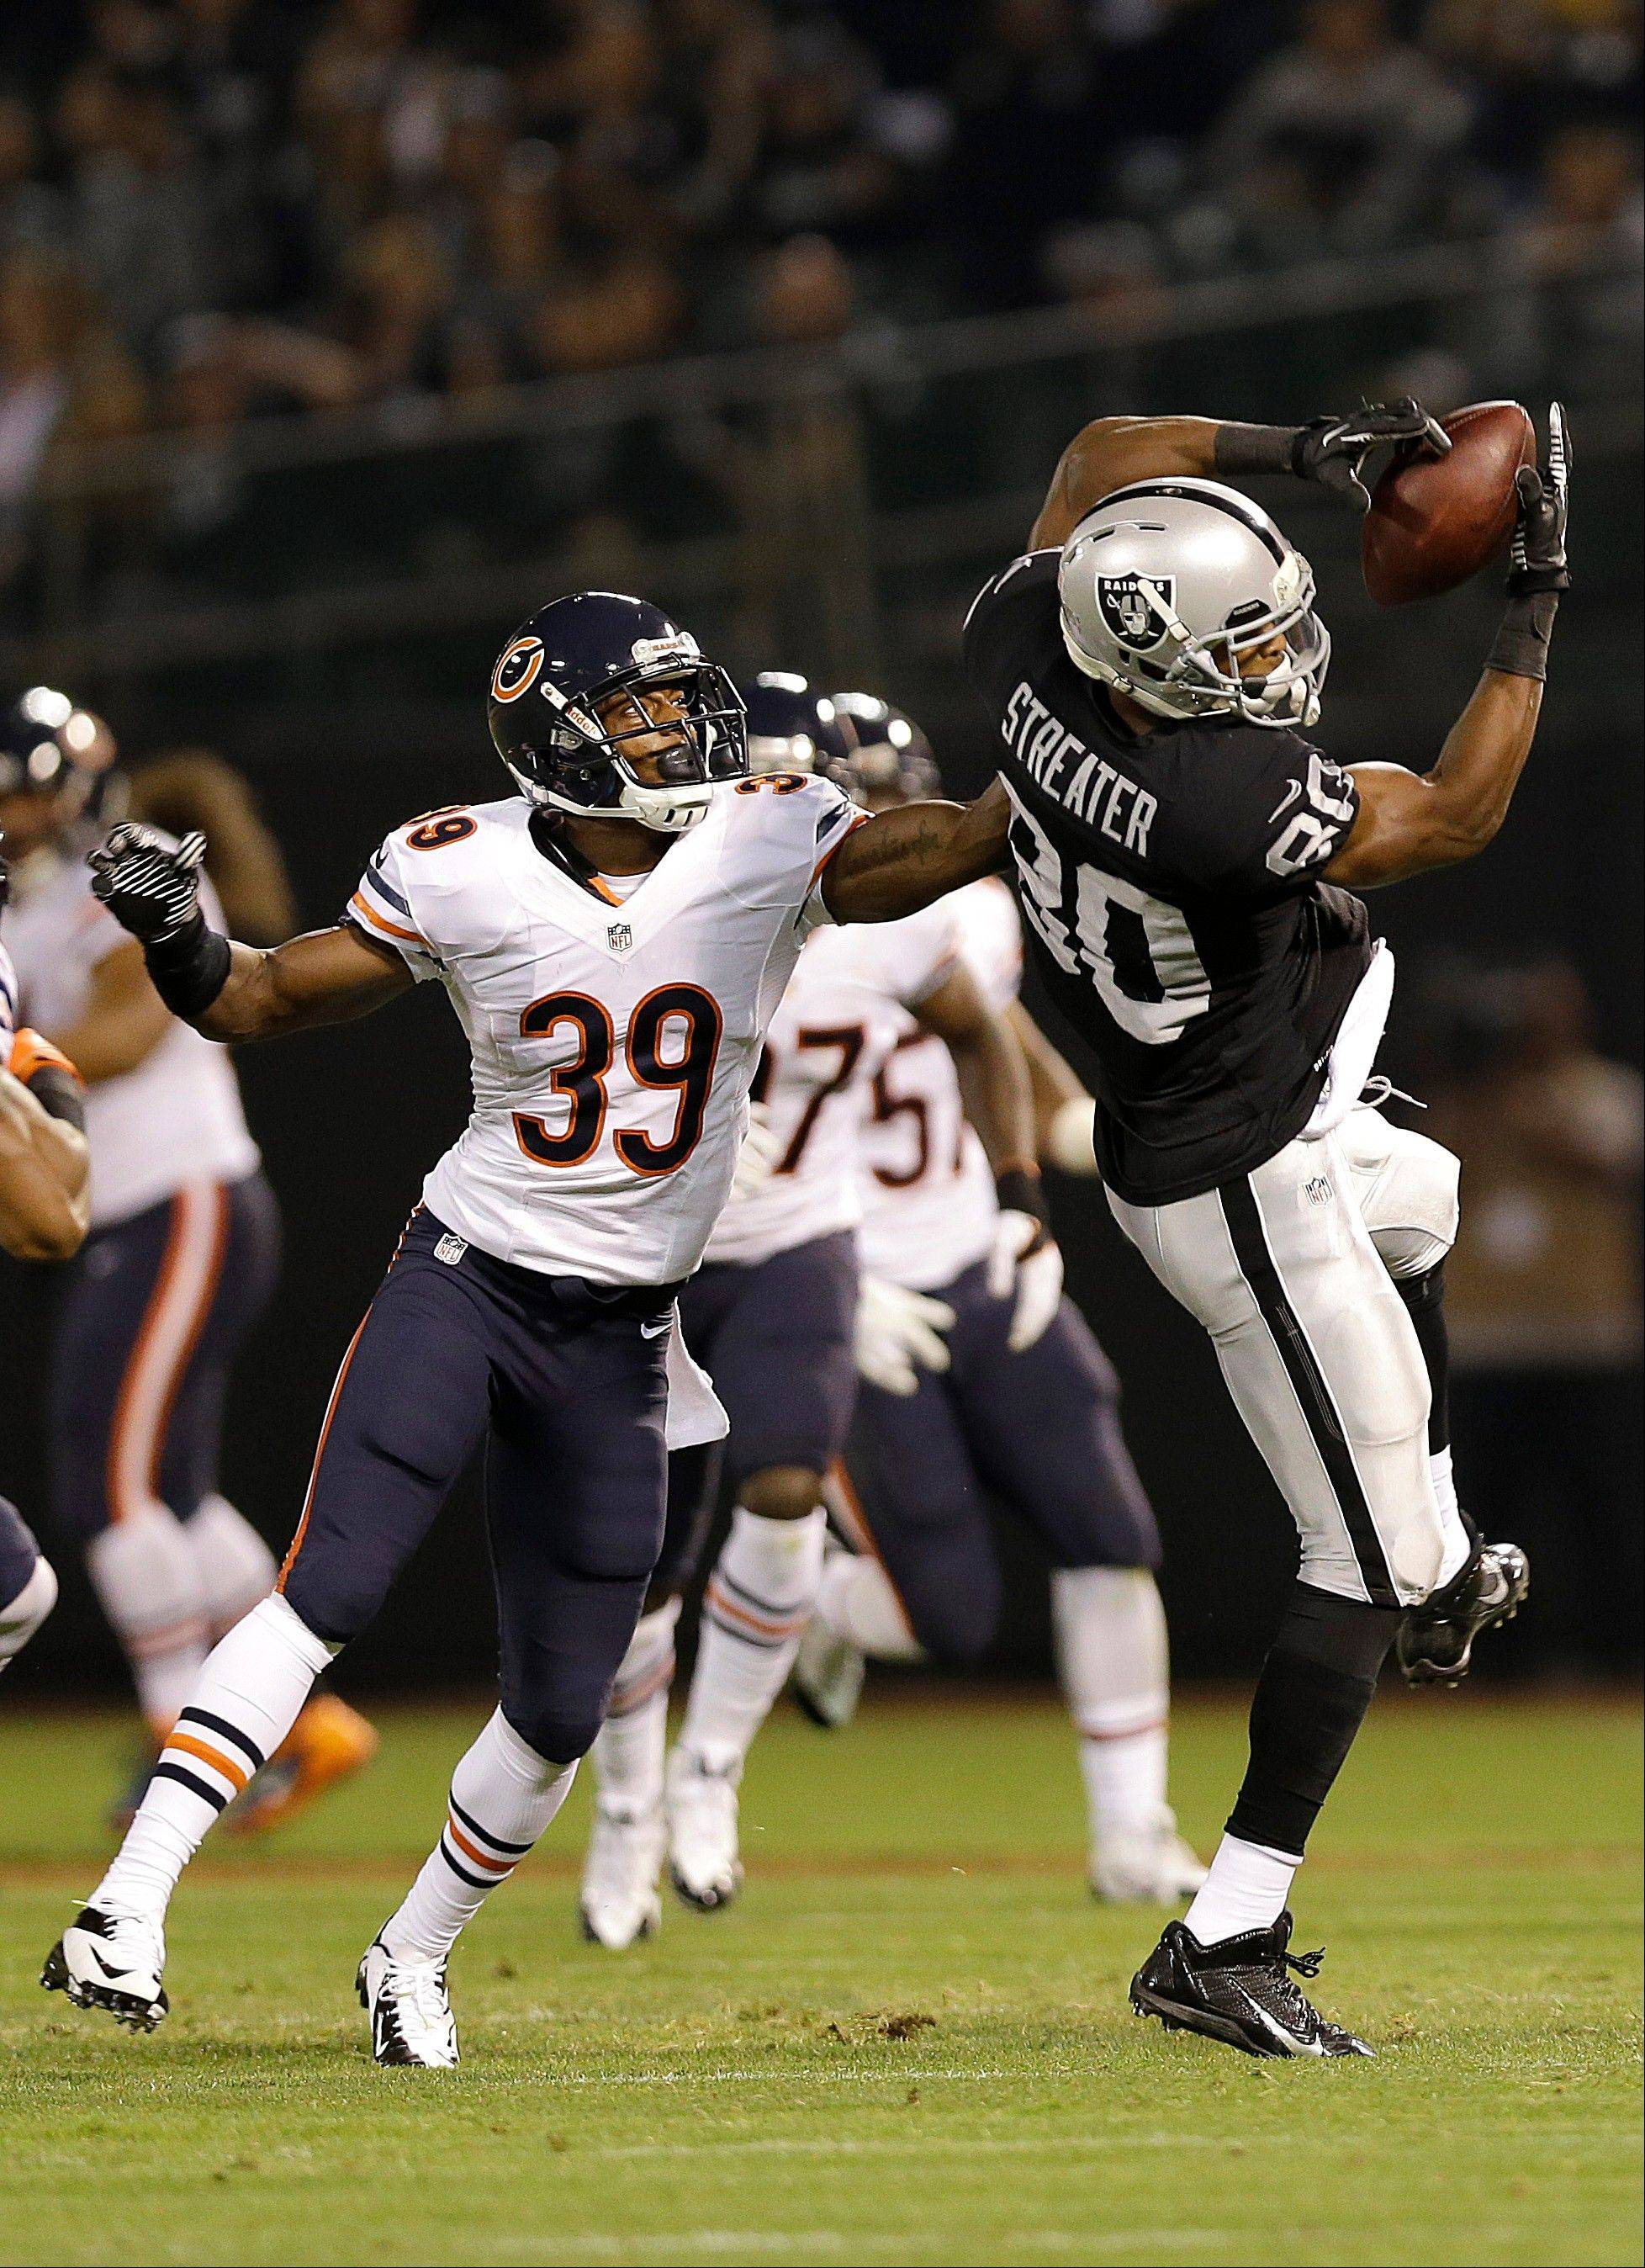 Oakland Raiders wide receiver Rod Streater (80) catches a pass over Chicago Bears cornerback C.J. Wilson (39) during the third quarter of an NFL preseason football game in Oakland, Calif., Friday. Wilson is in a battle with Demontre Hurst and Sherrick McManis for a roster spot.